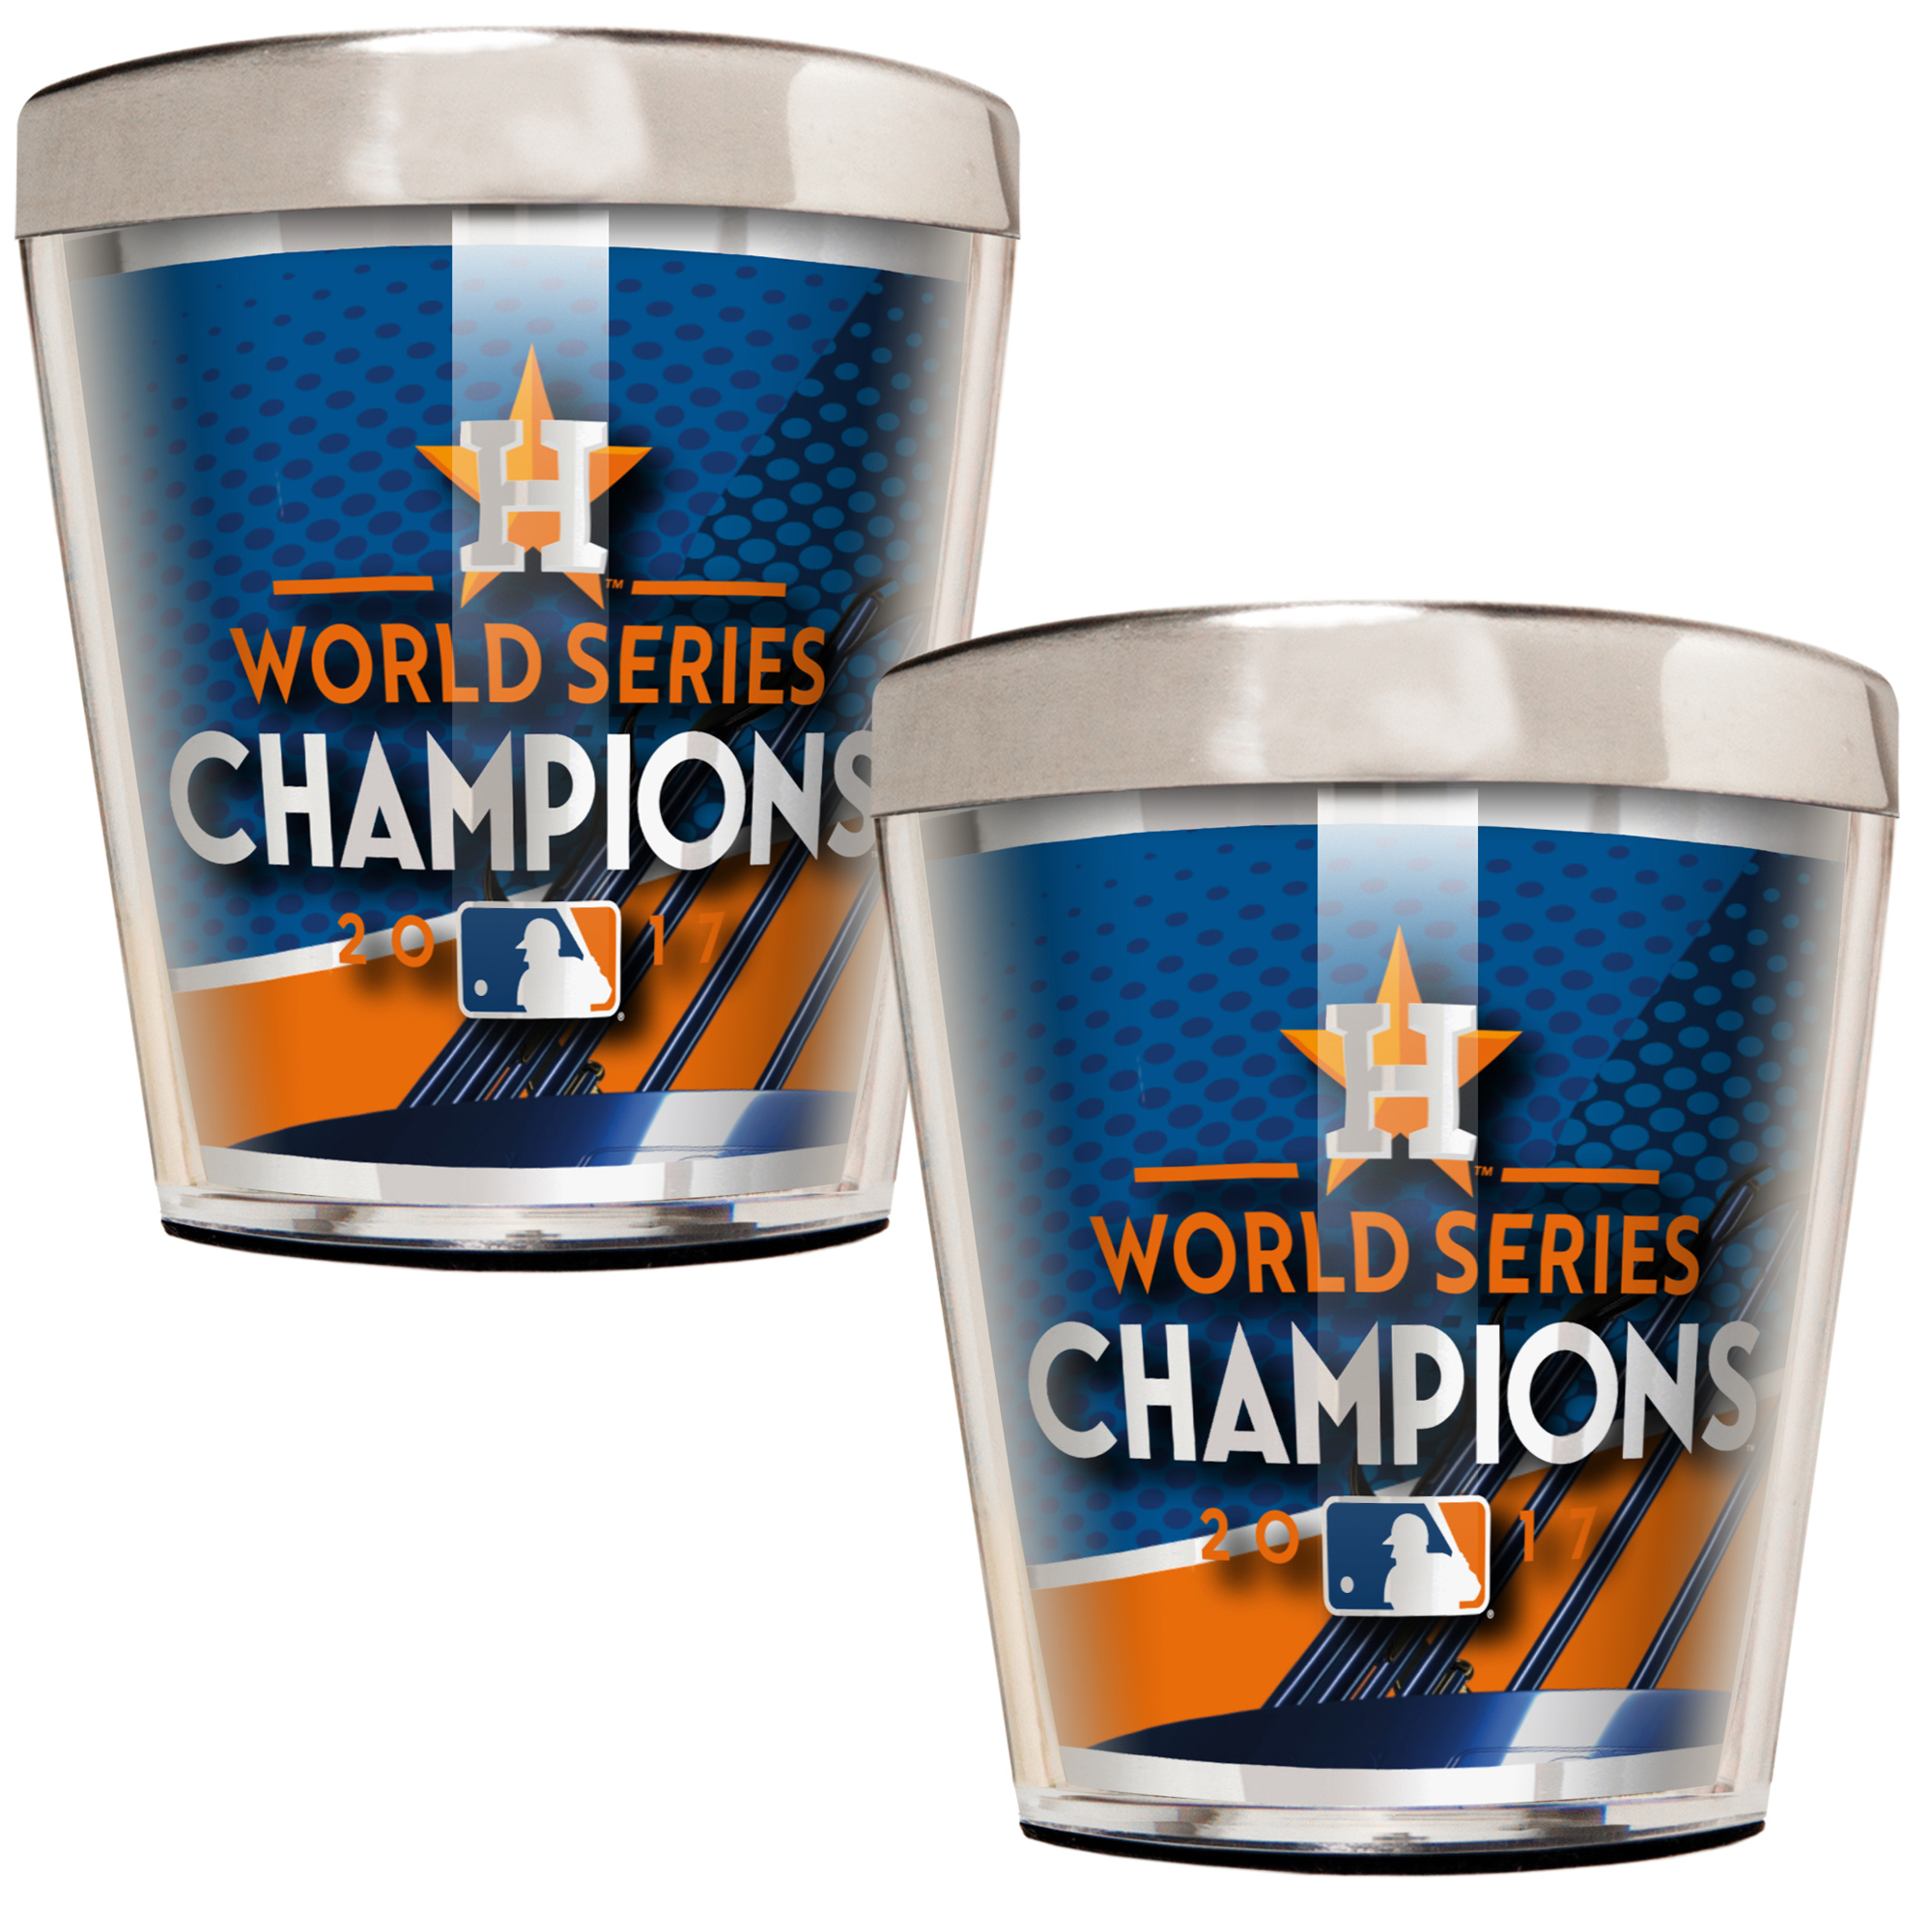 Houston Astros 2017 World Series Champions 2oz. Shot Glass Set - Silver - No Size